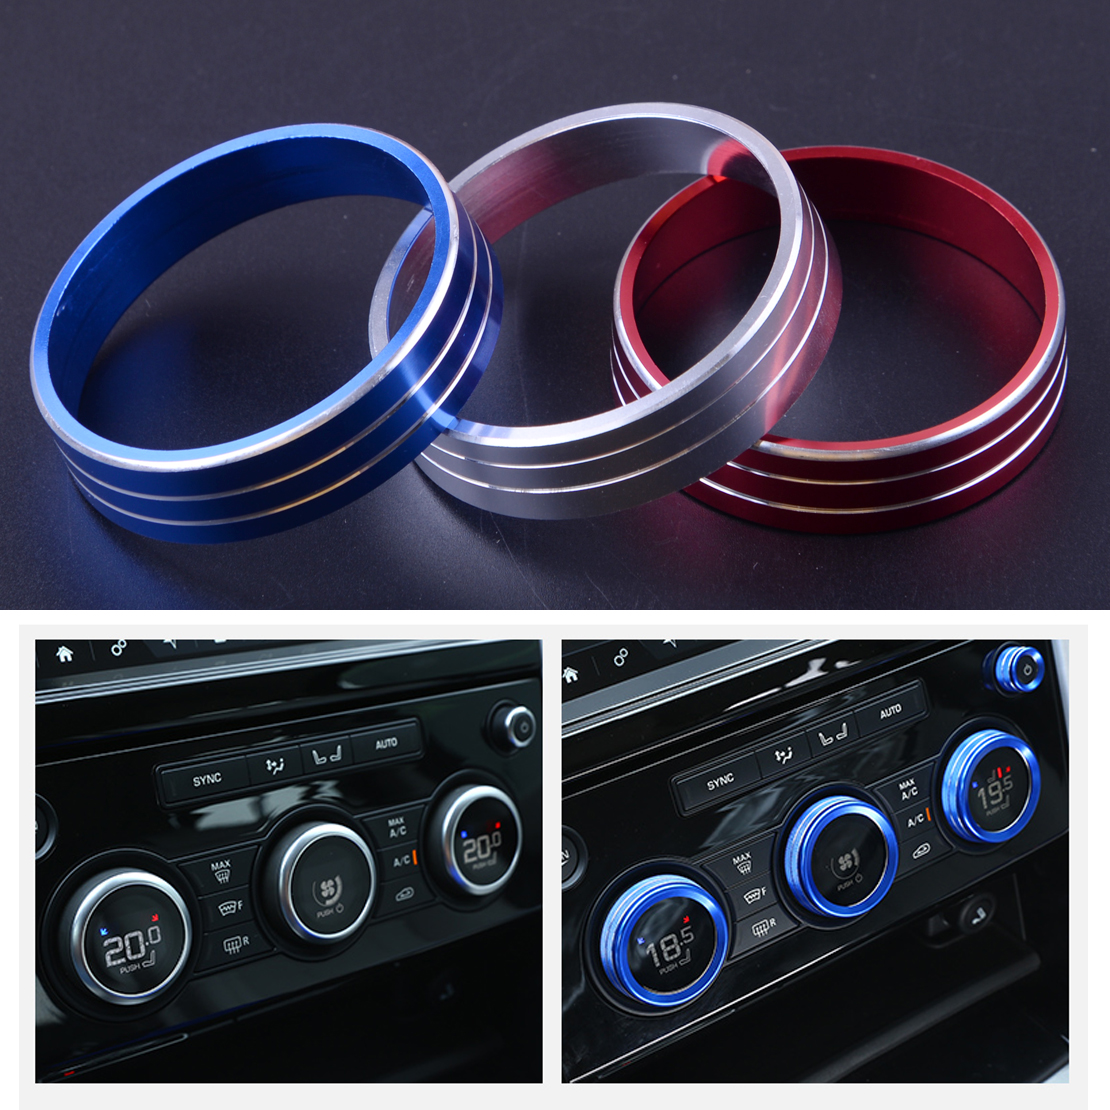 Candid Citall A/c Heater Climate Control Switch Panel Buttons Knobs Cover Trim Ring Fit For Mitsubishi Lancer Outlander Air-conditioning Installation Automobiles & Motorcycles